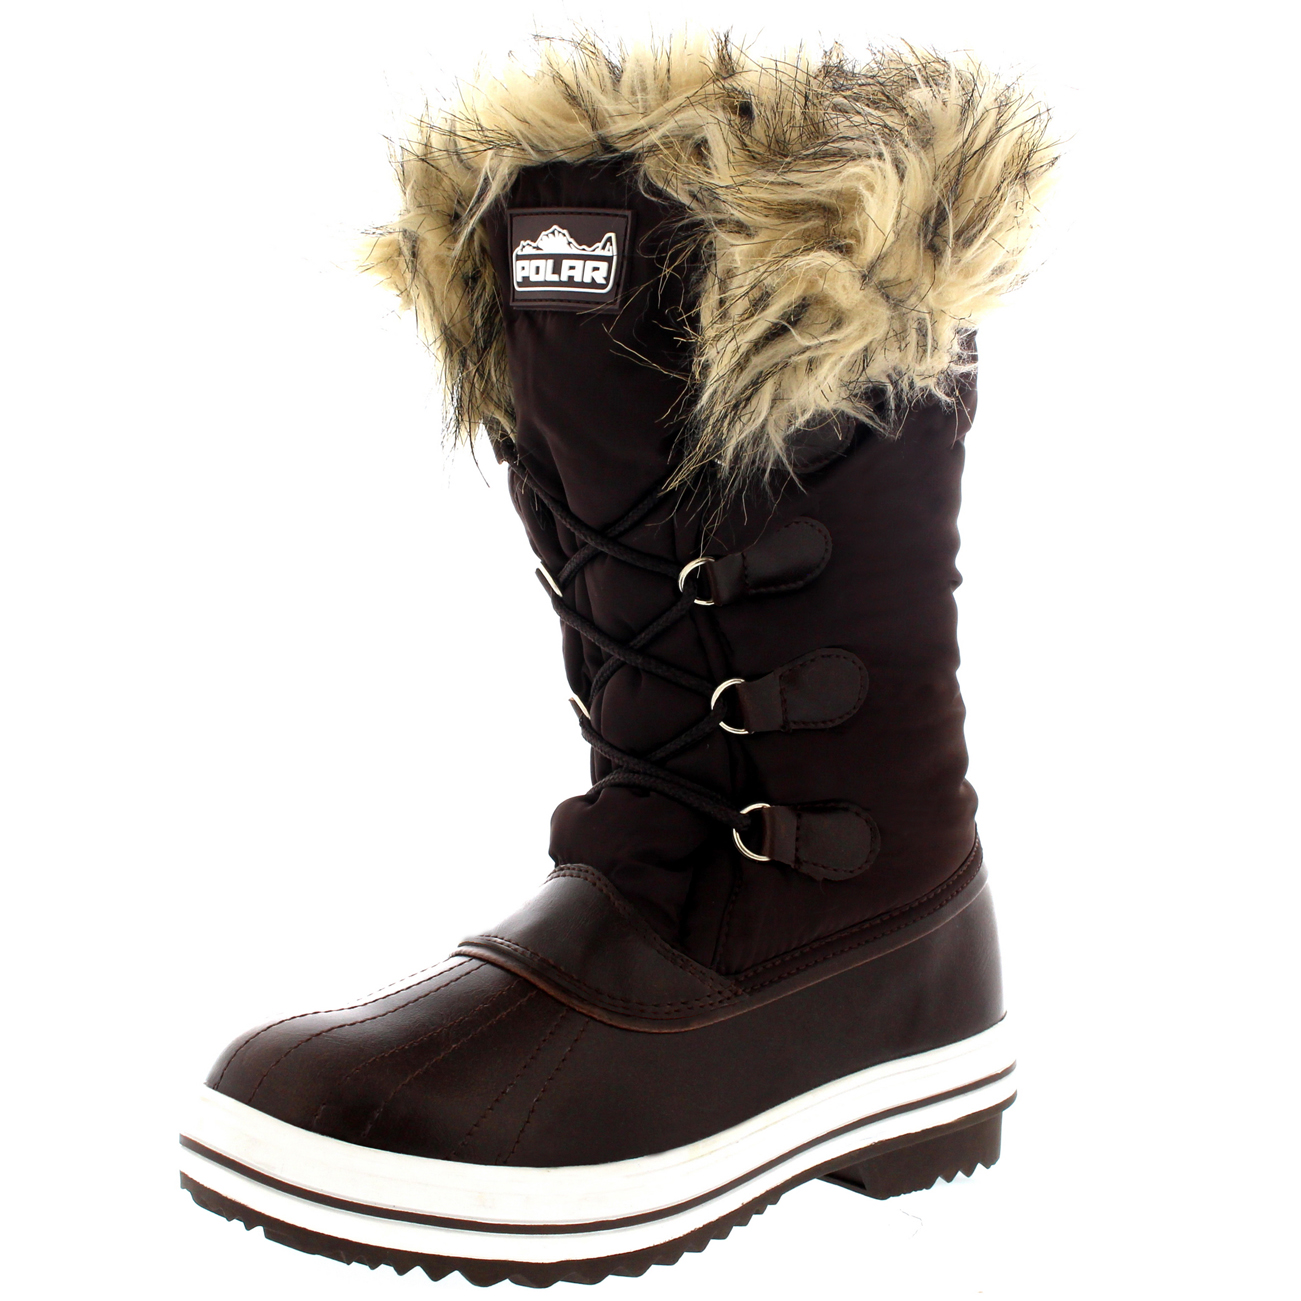 Womens Nylon Warm Fur Trim Duck Rain Snow Outdoor Tall Winter Rain ...